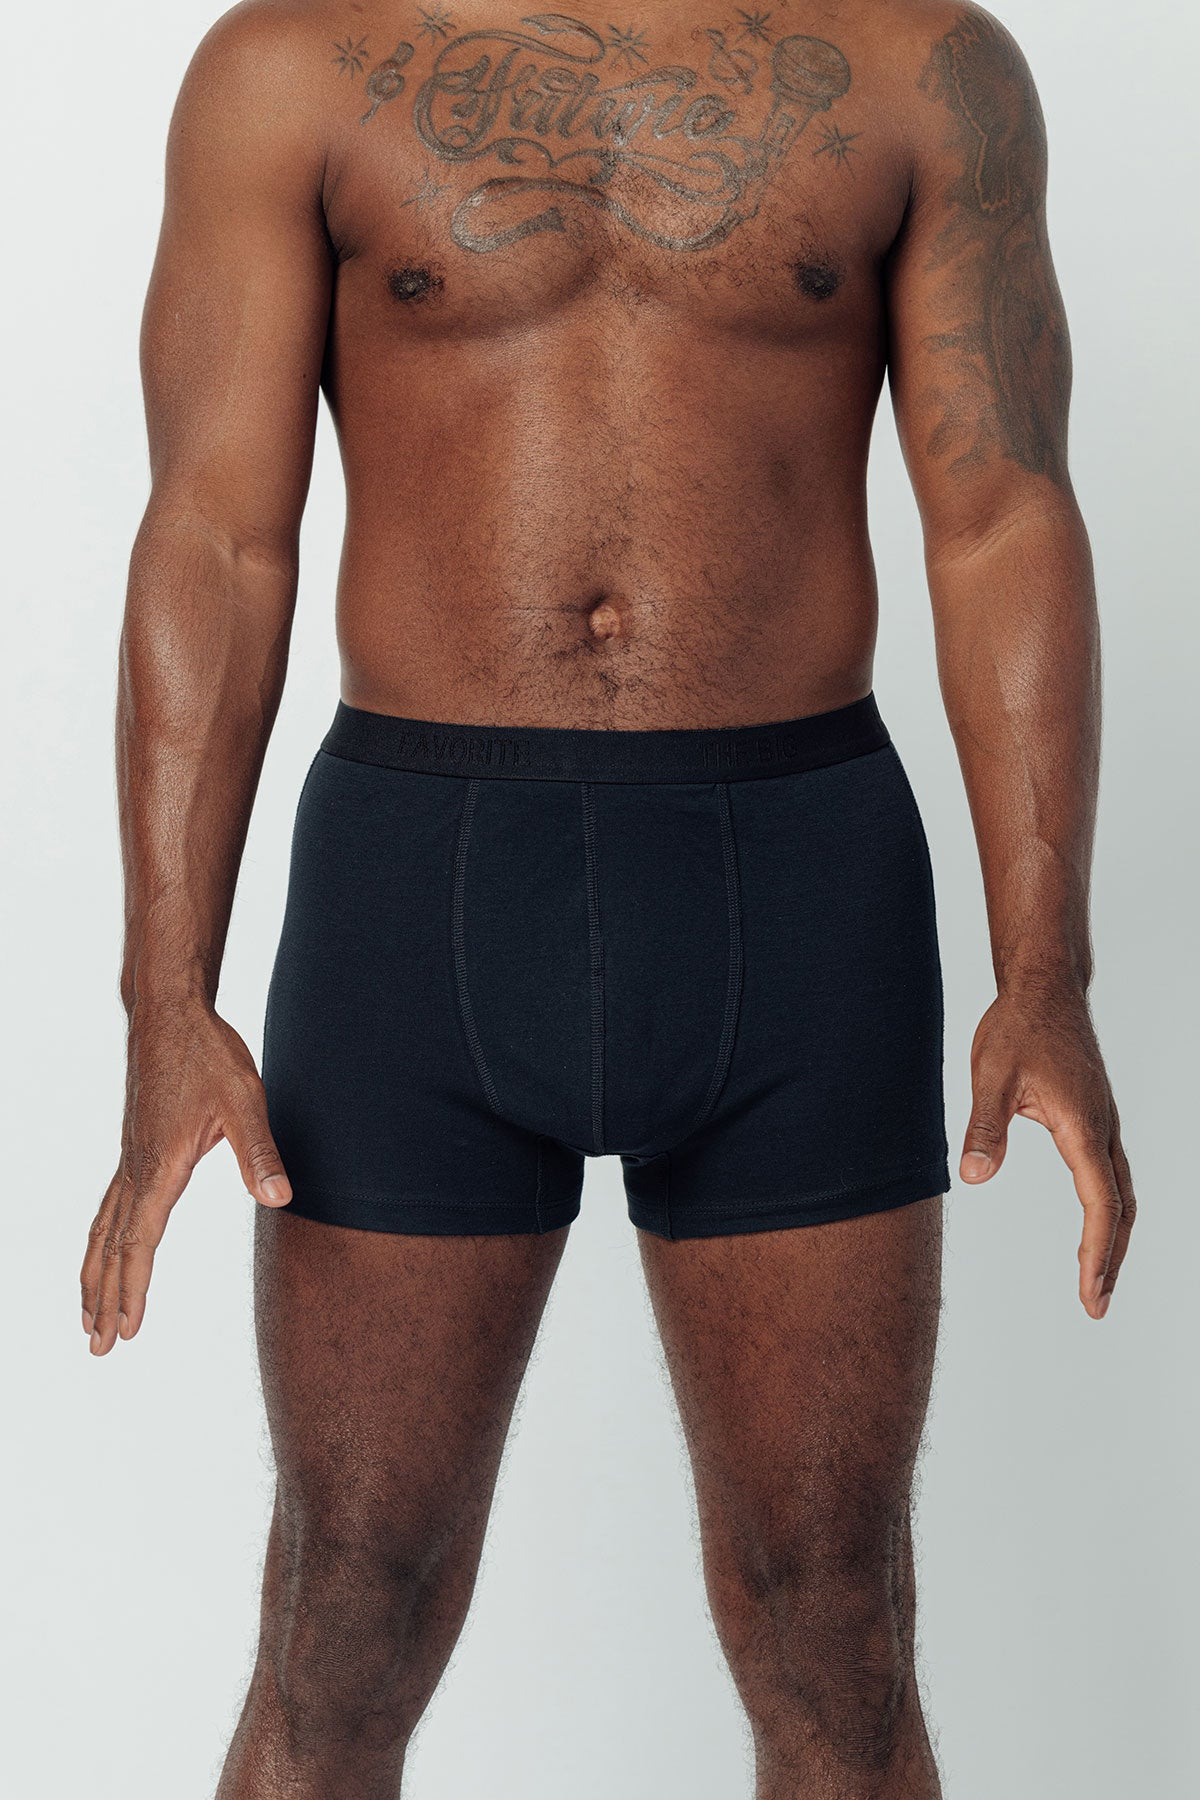 100% Pima Cotton Boxer Brief with stretch elastic and front pouch in Navy color.